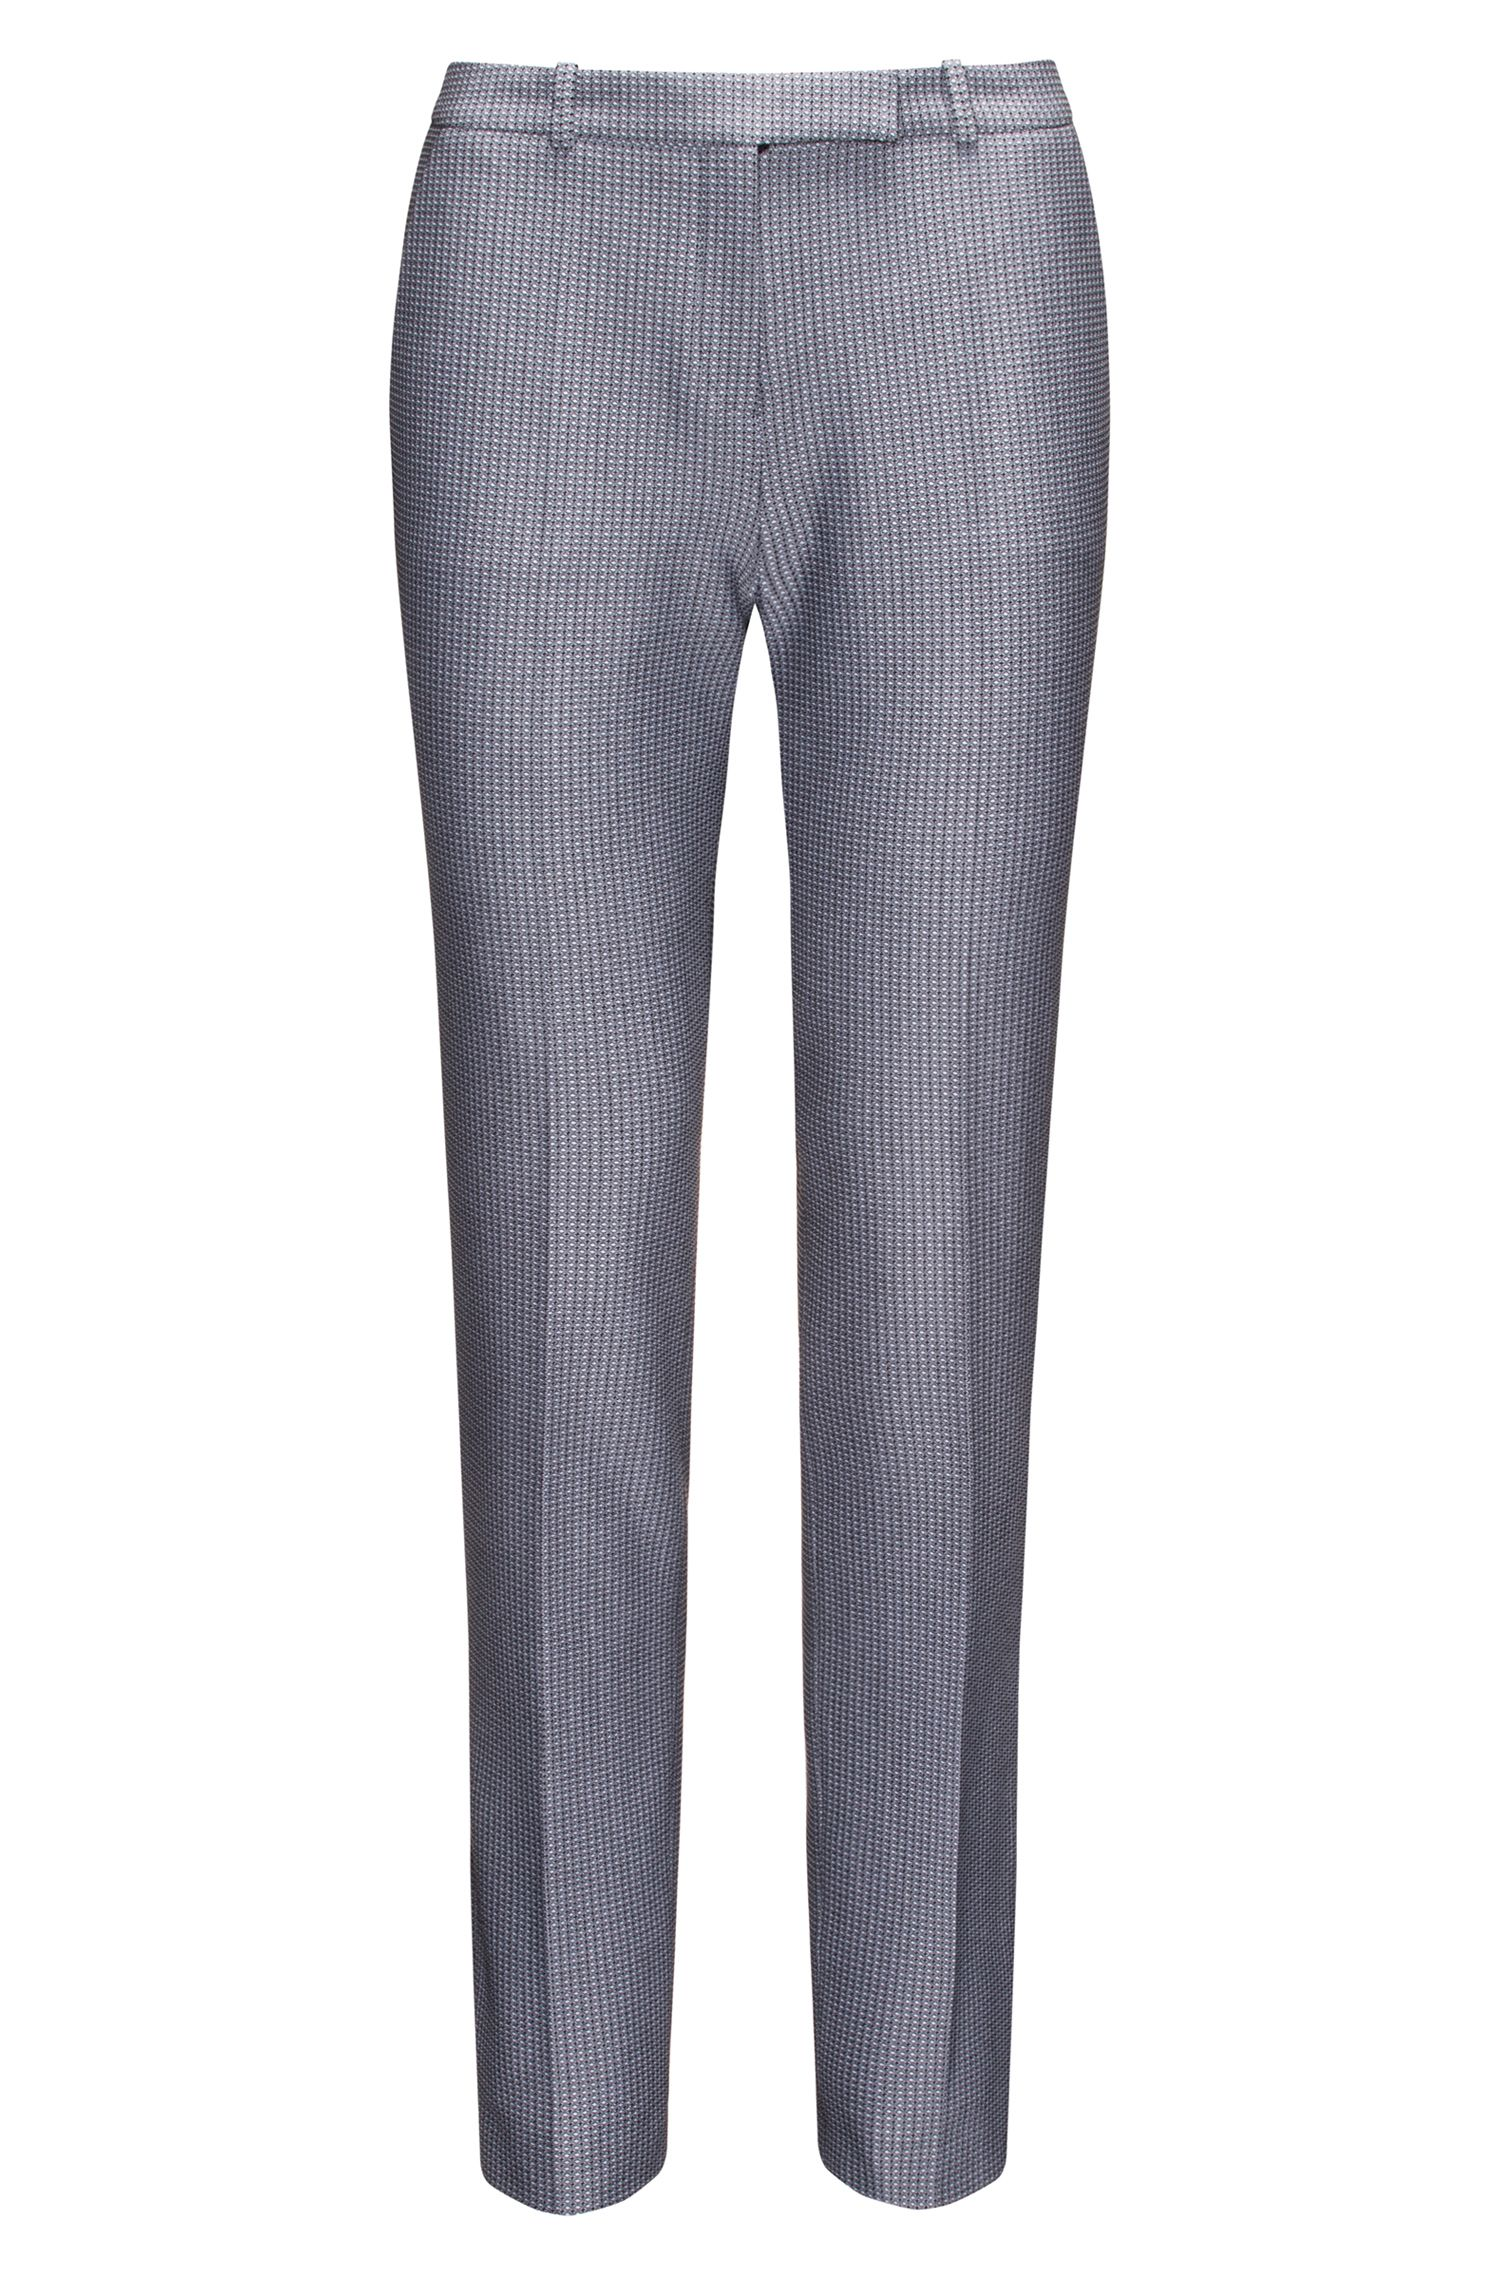 Regular-fit cigarette trousers in midweight fabric